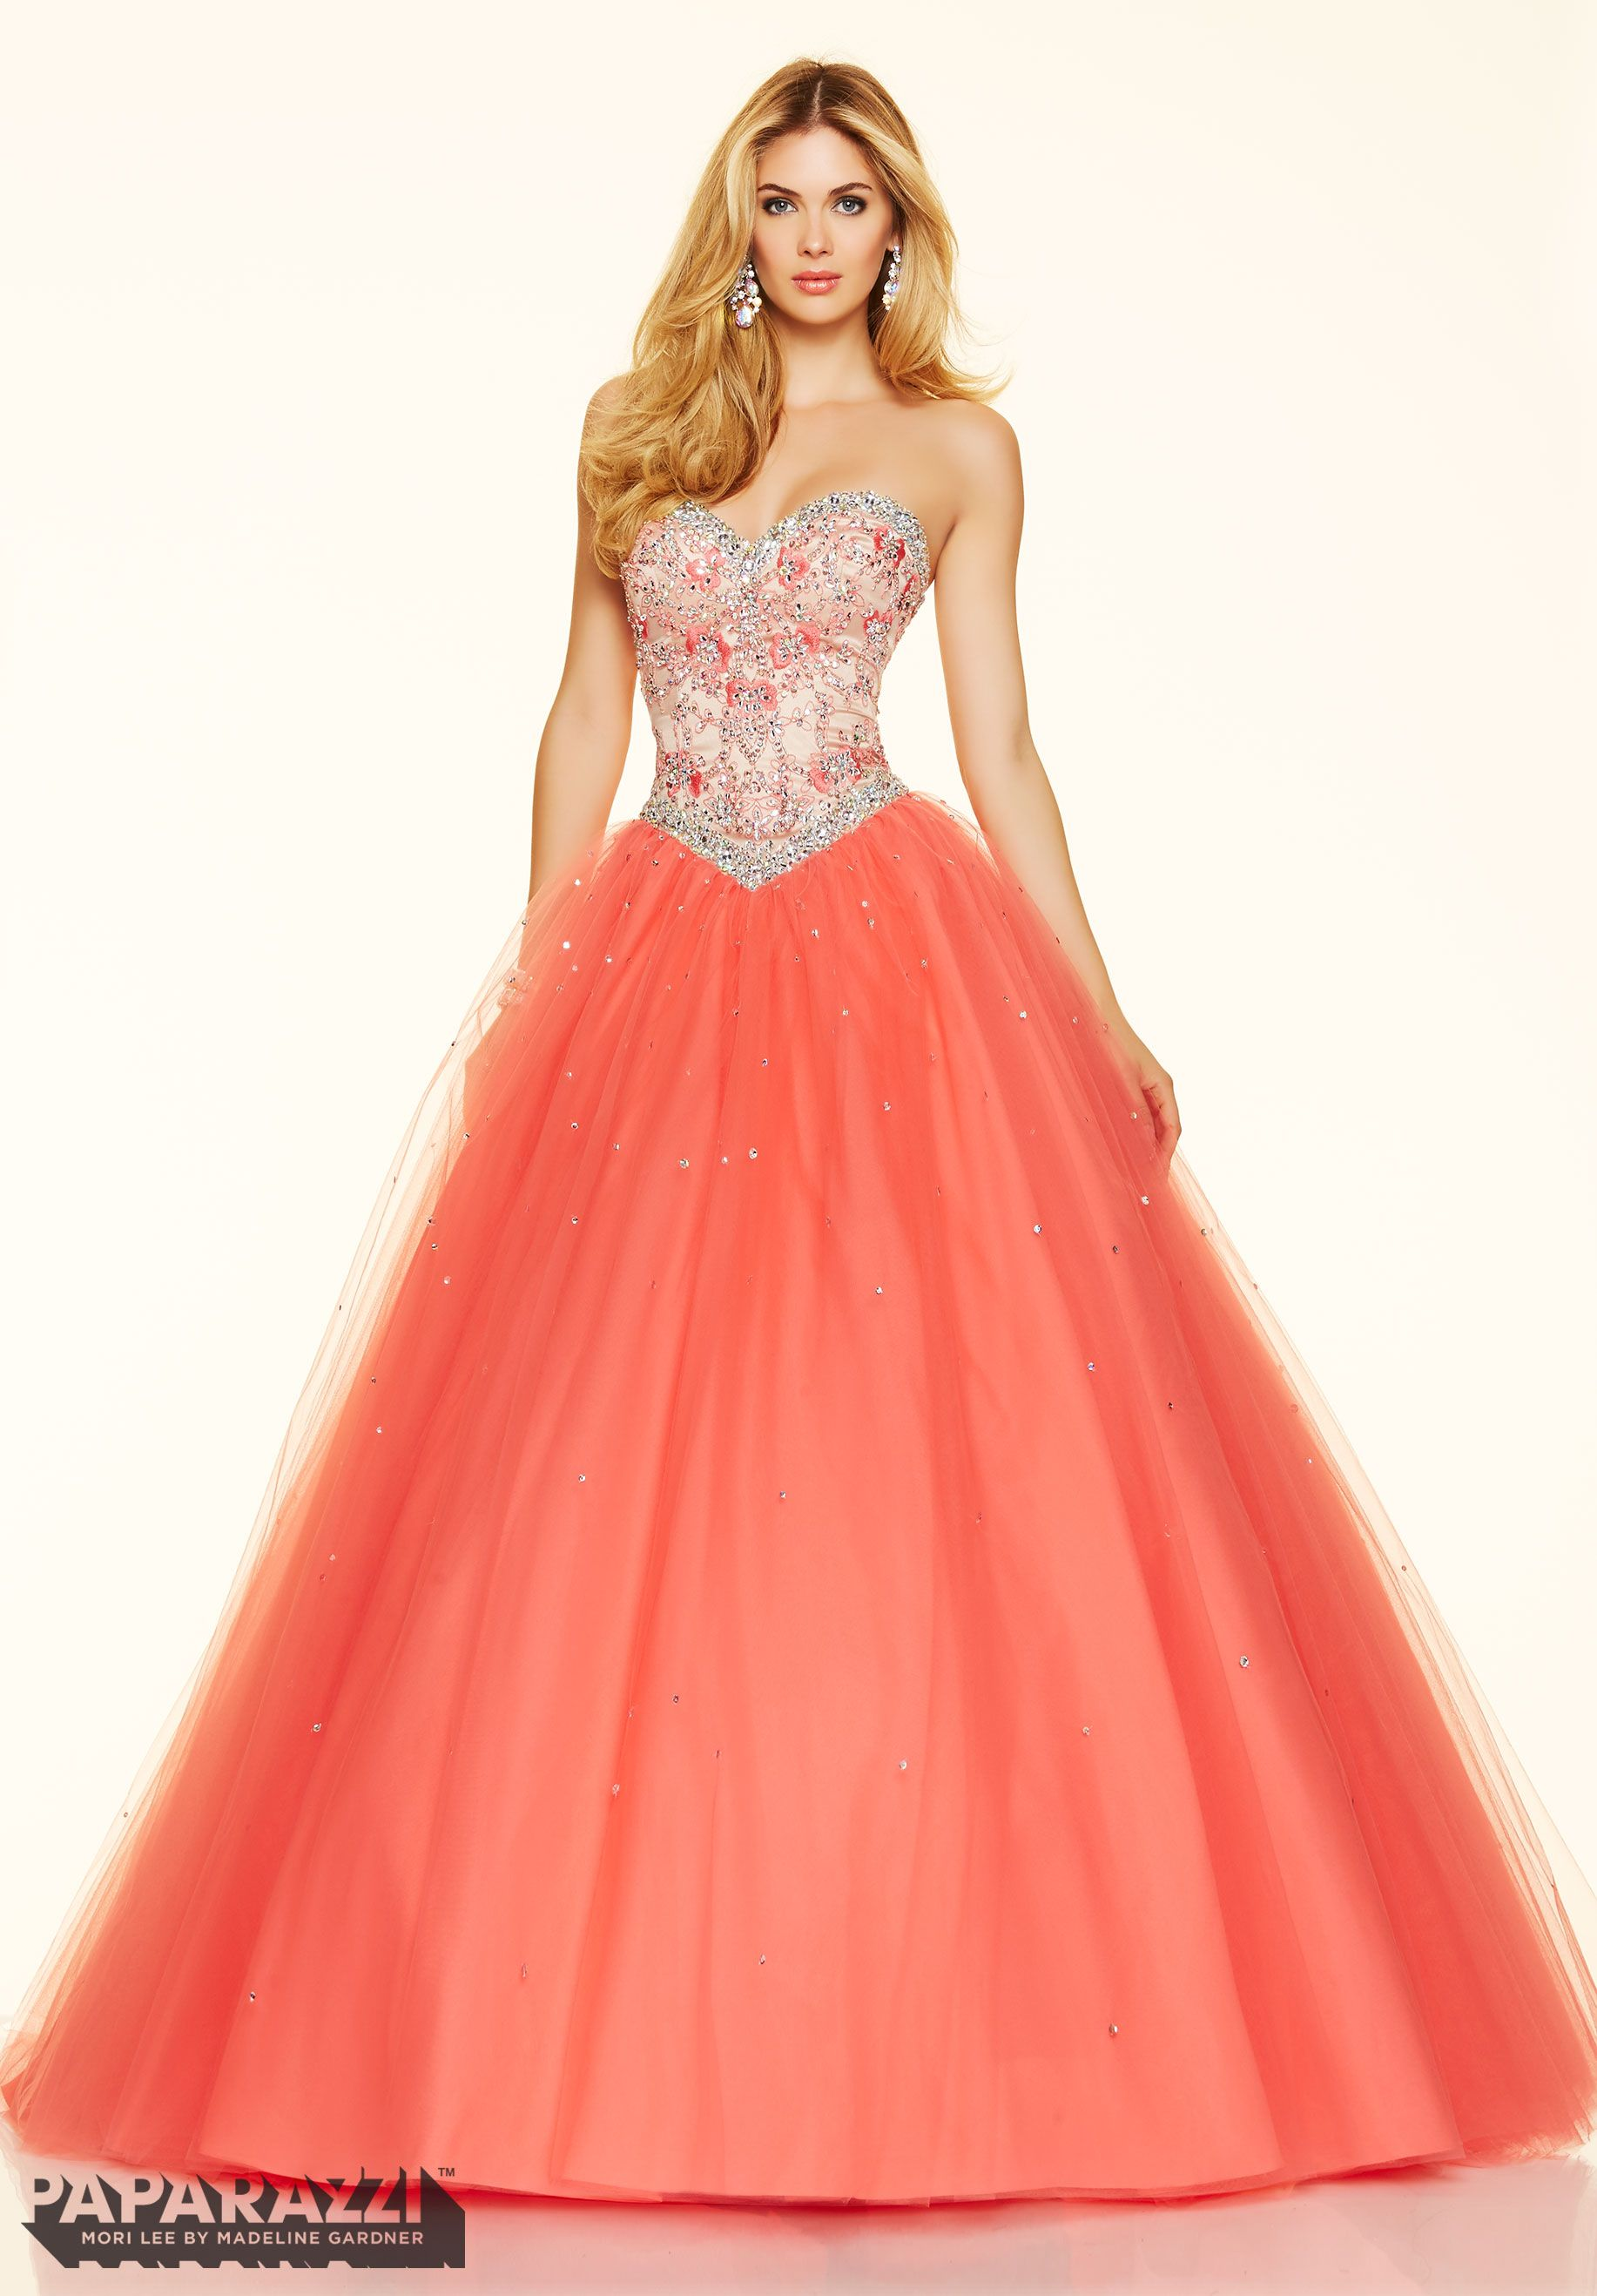 Mori lee orange prom dress